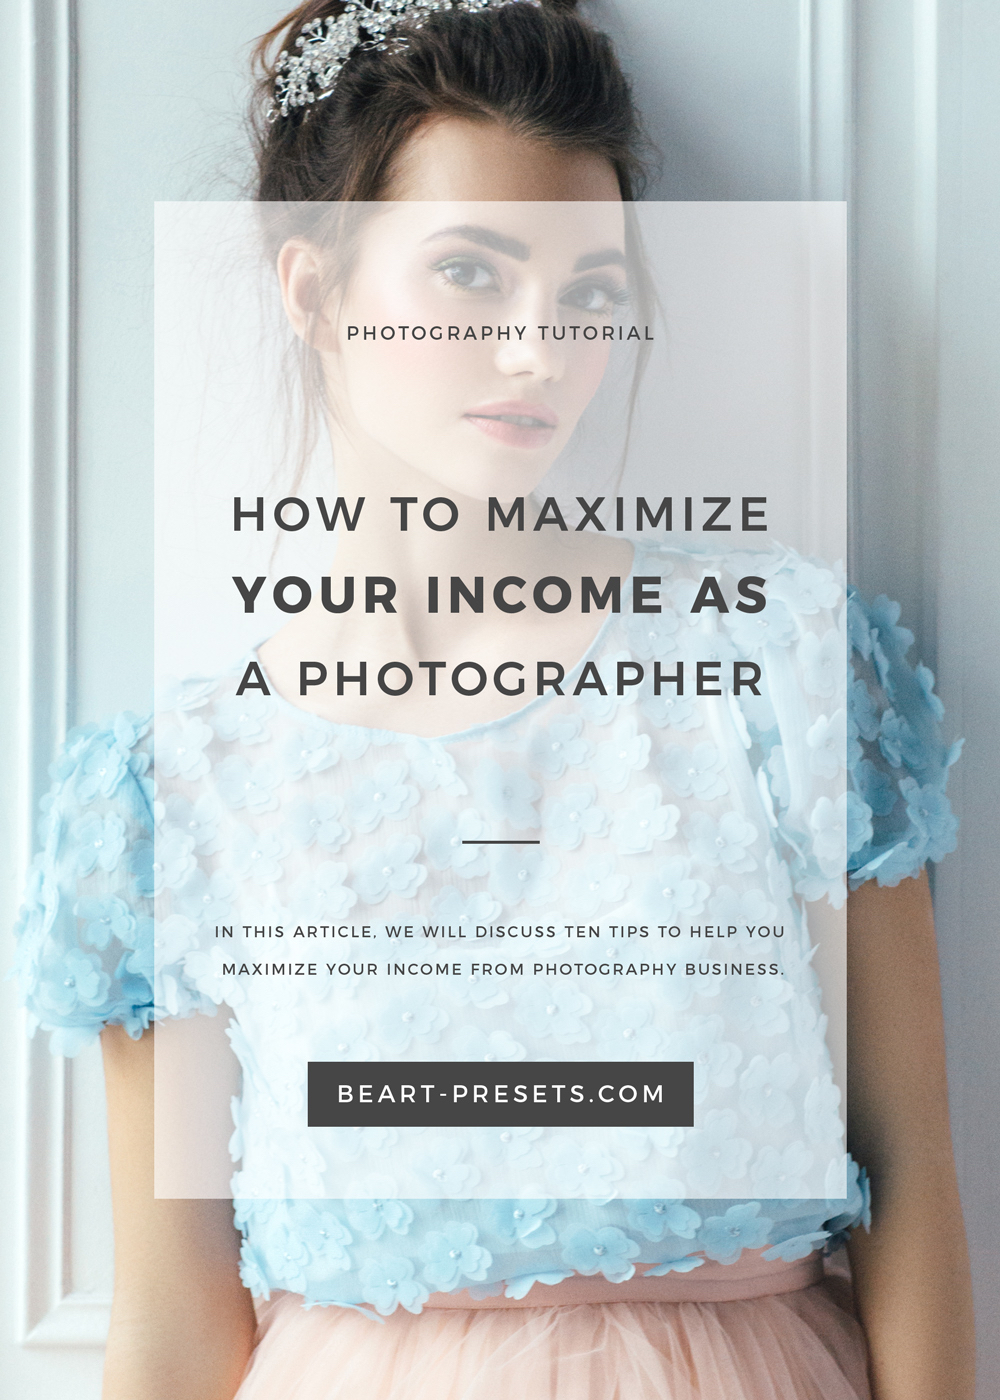 HOW-TO-MAXIMIZE-YOUR-INCOME-AS-A-PHOTOGRAPHER